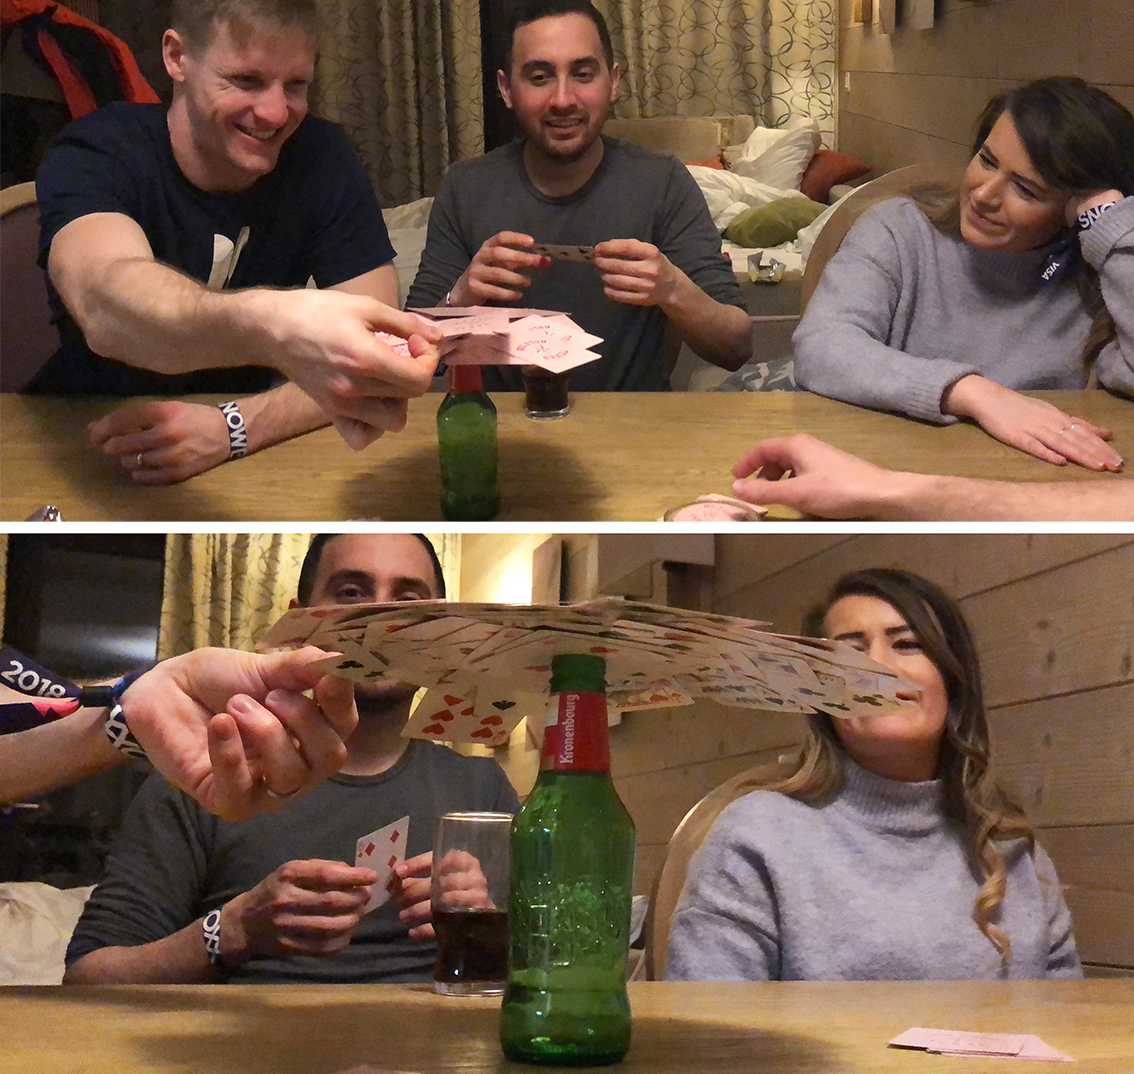 Us in our apartment playing card games, balancing cards on top of an empty beer bottle